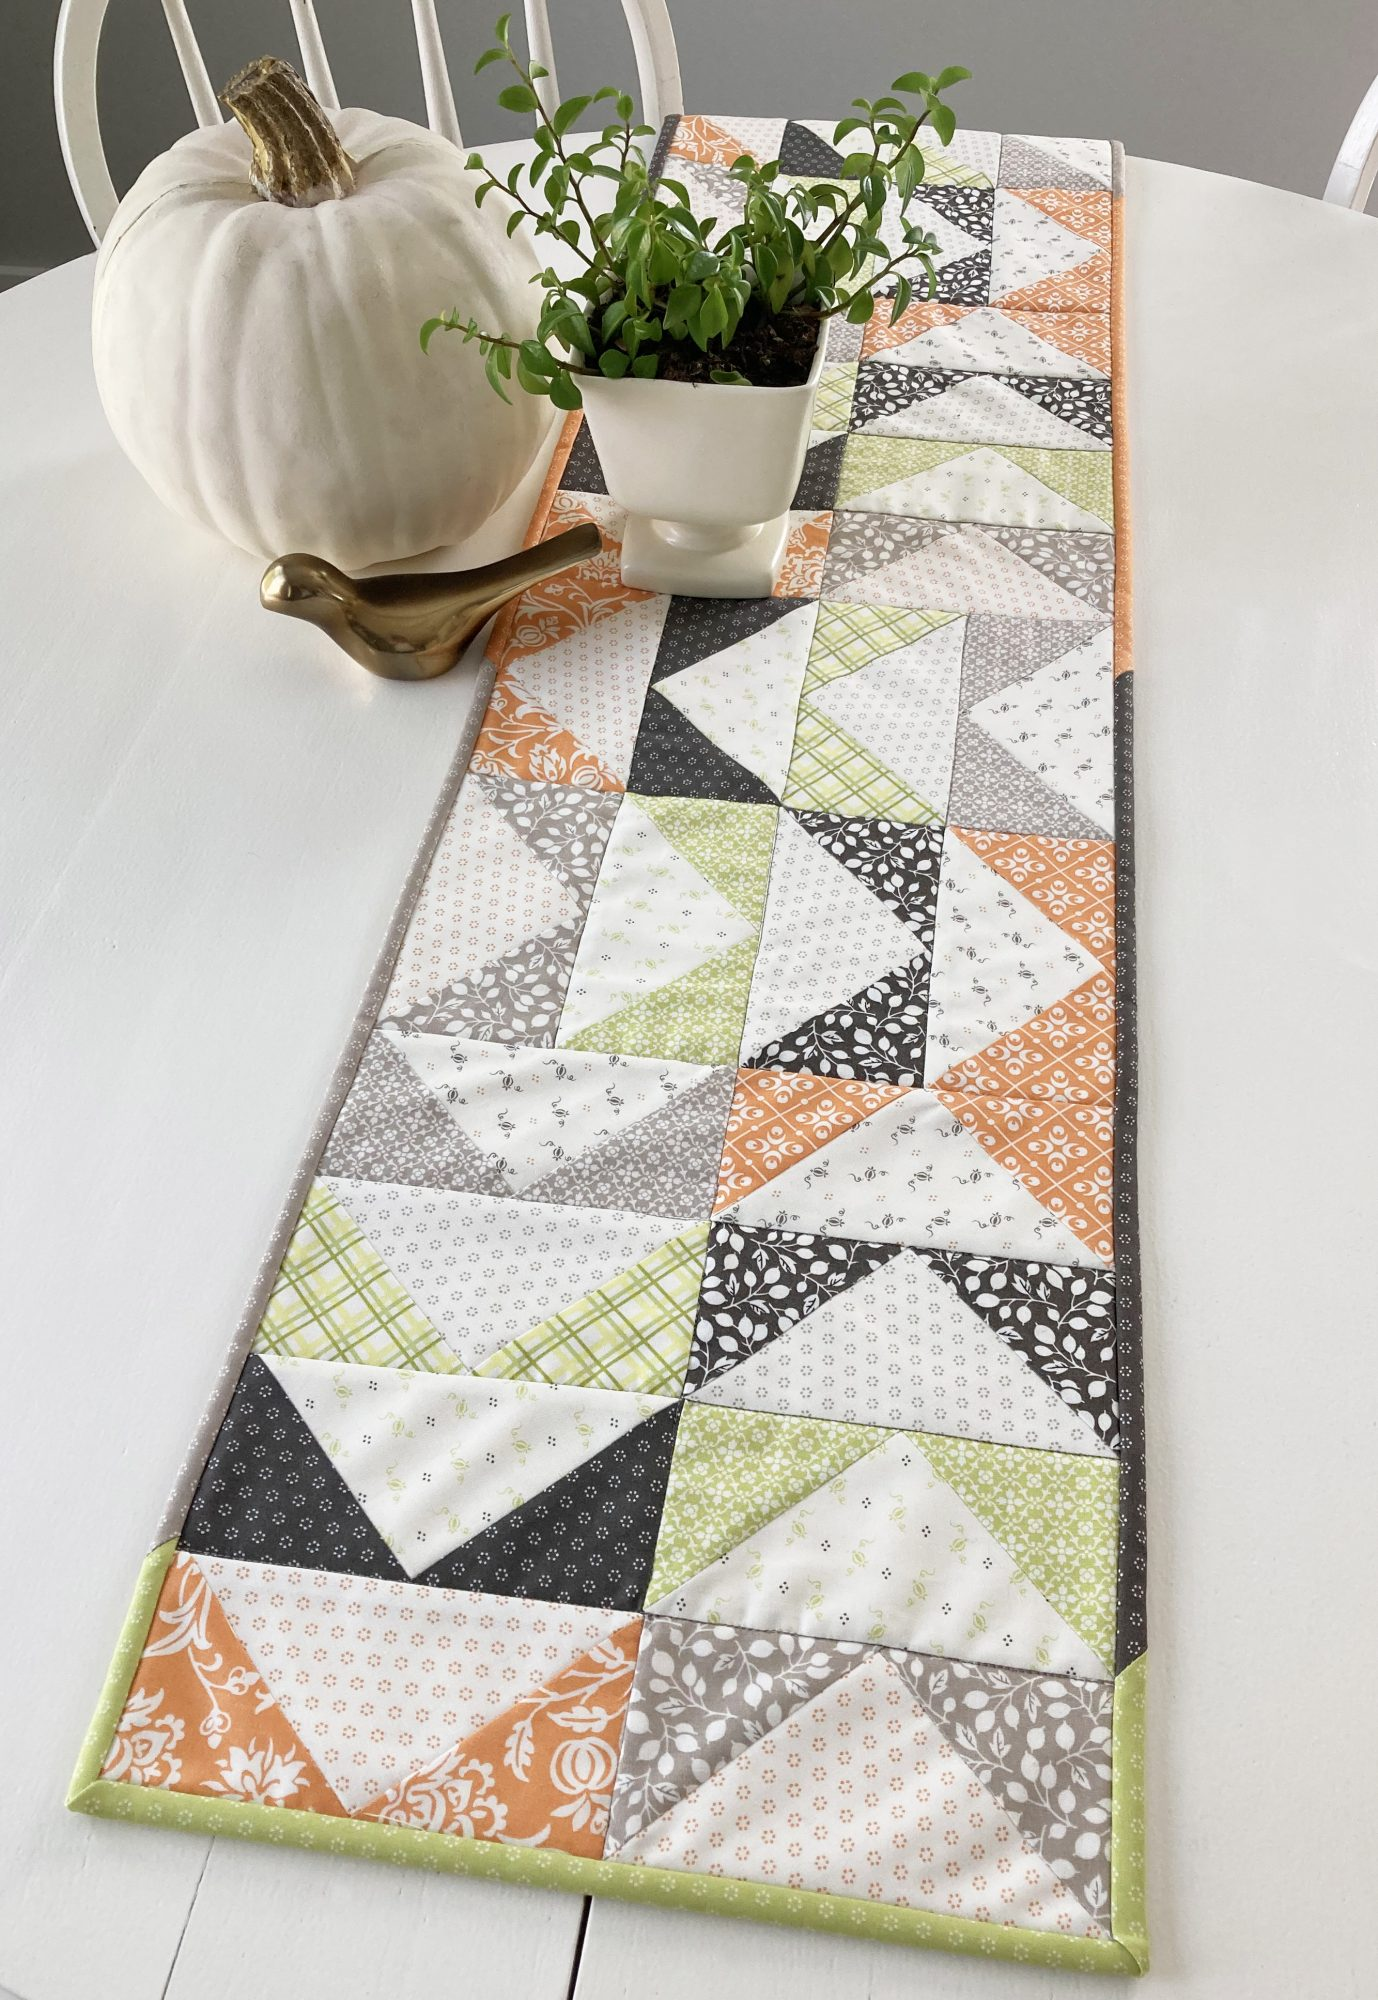 Flying geese table runner made in orange, green, and gray fall prints.